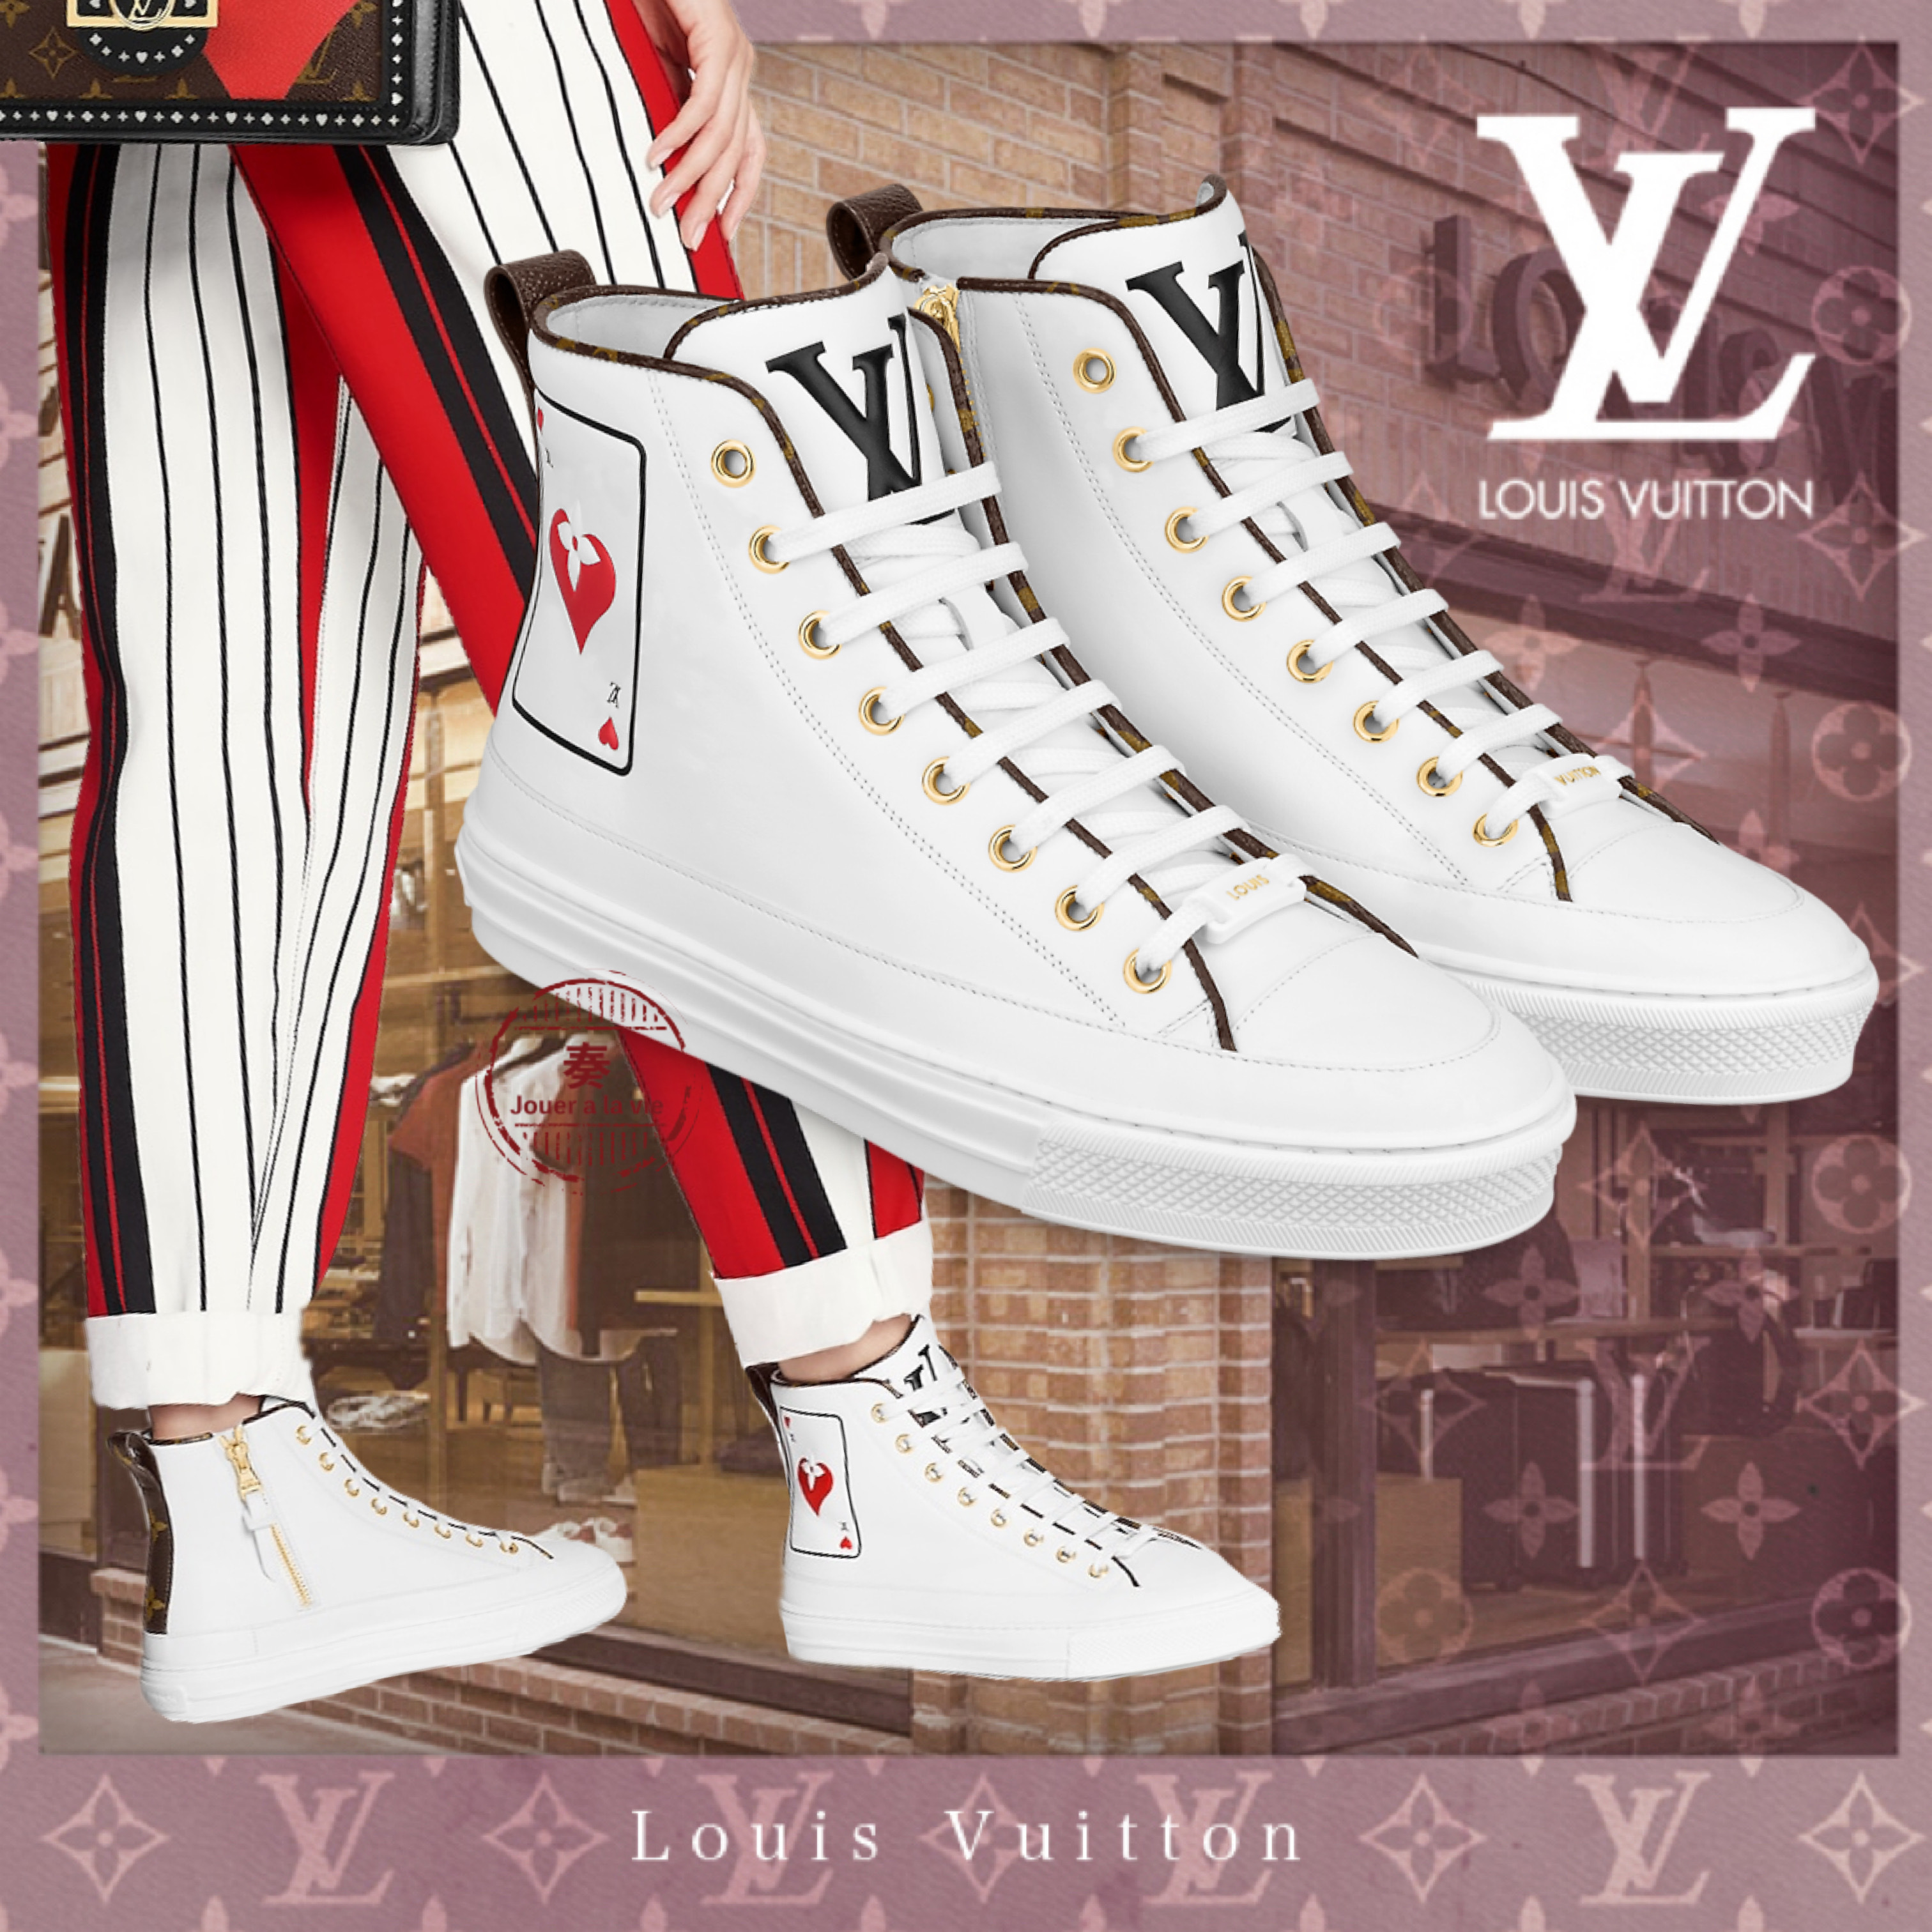 shop chanel louis vuitton